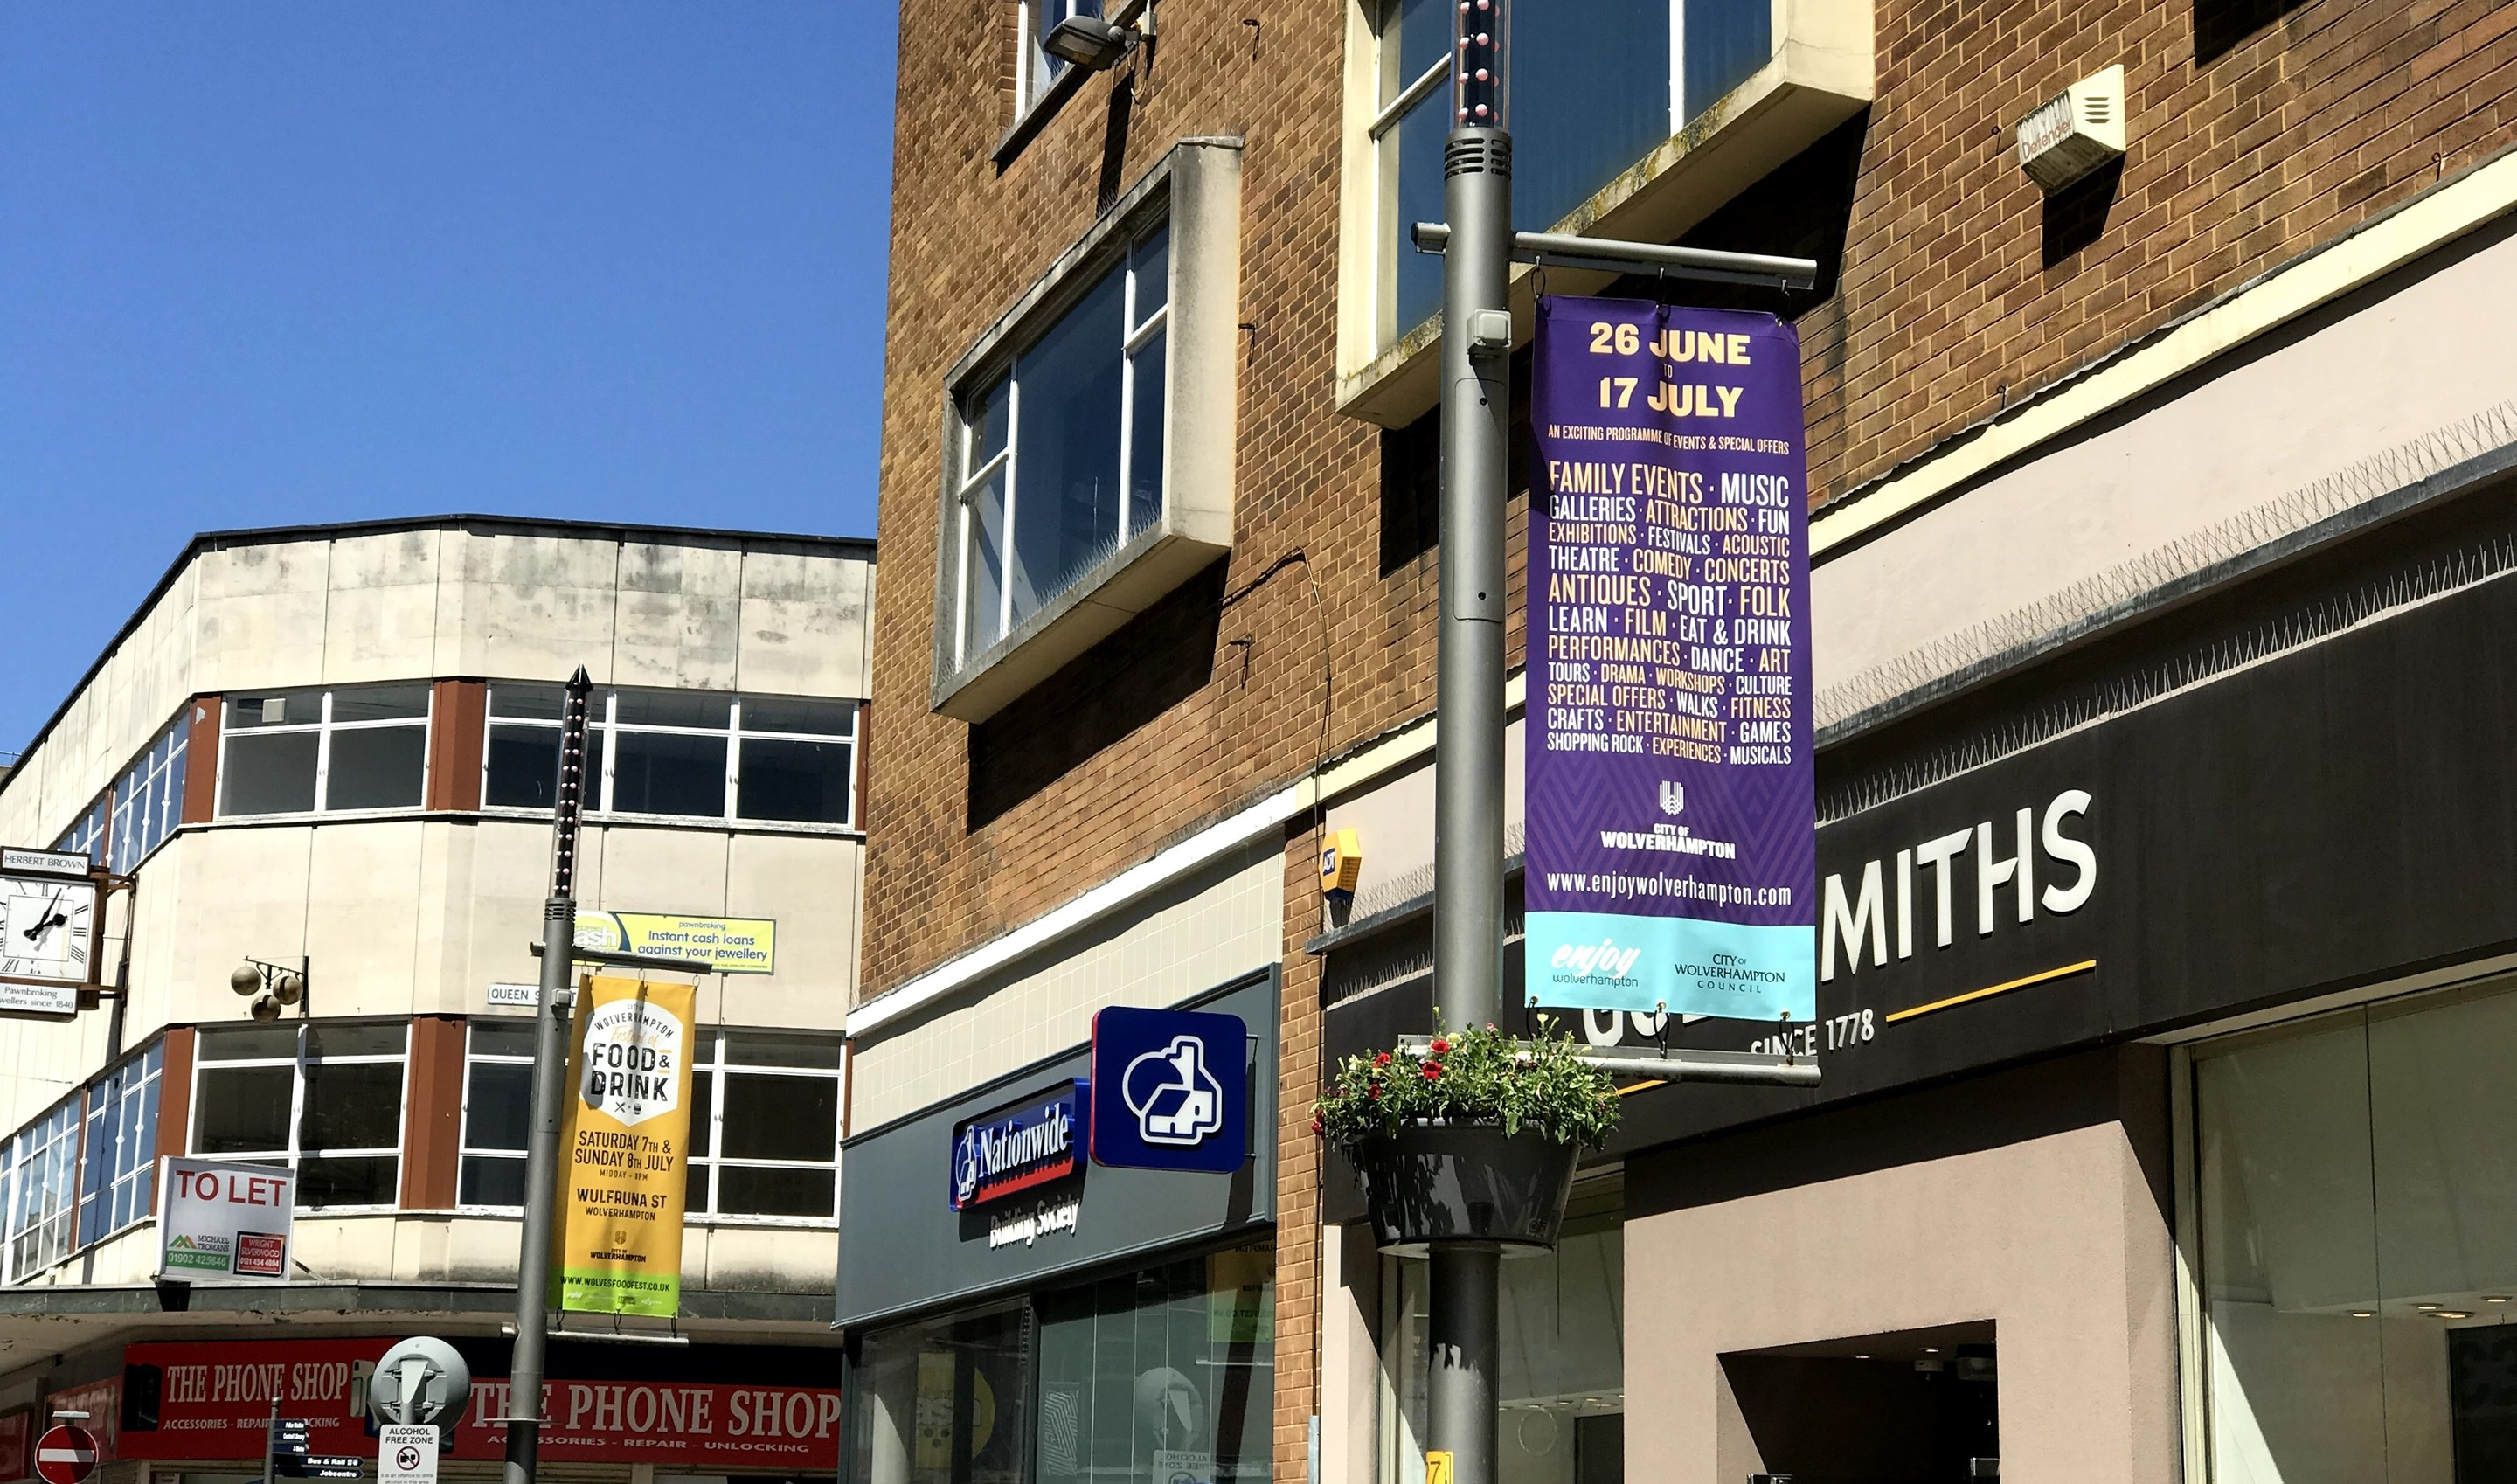 Wolverhampton City Council Advertising Street Signage Banners